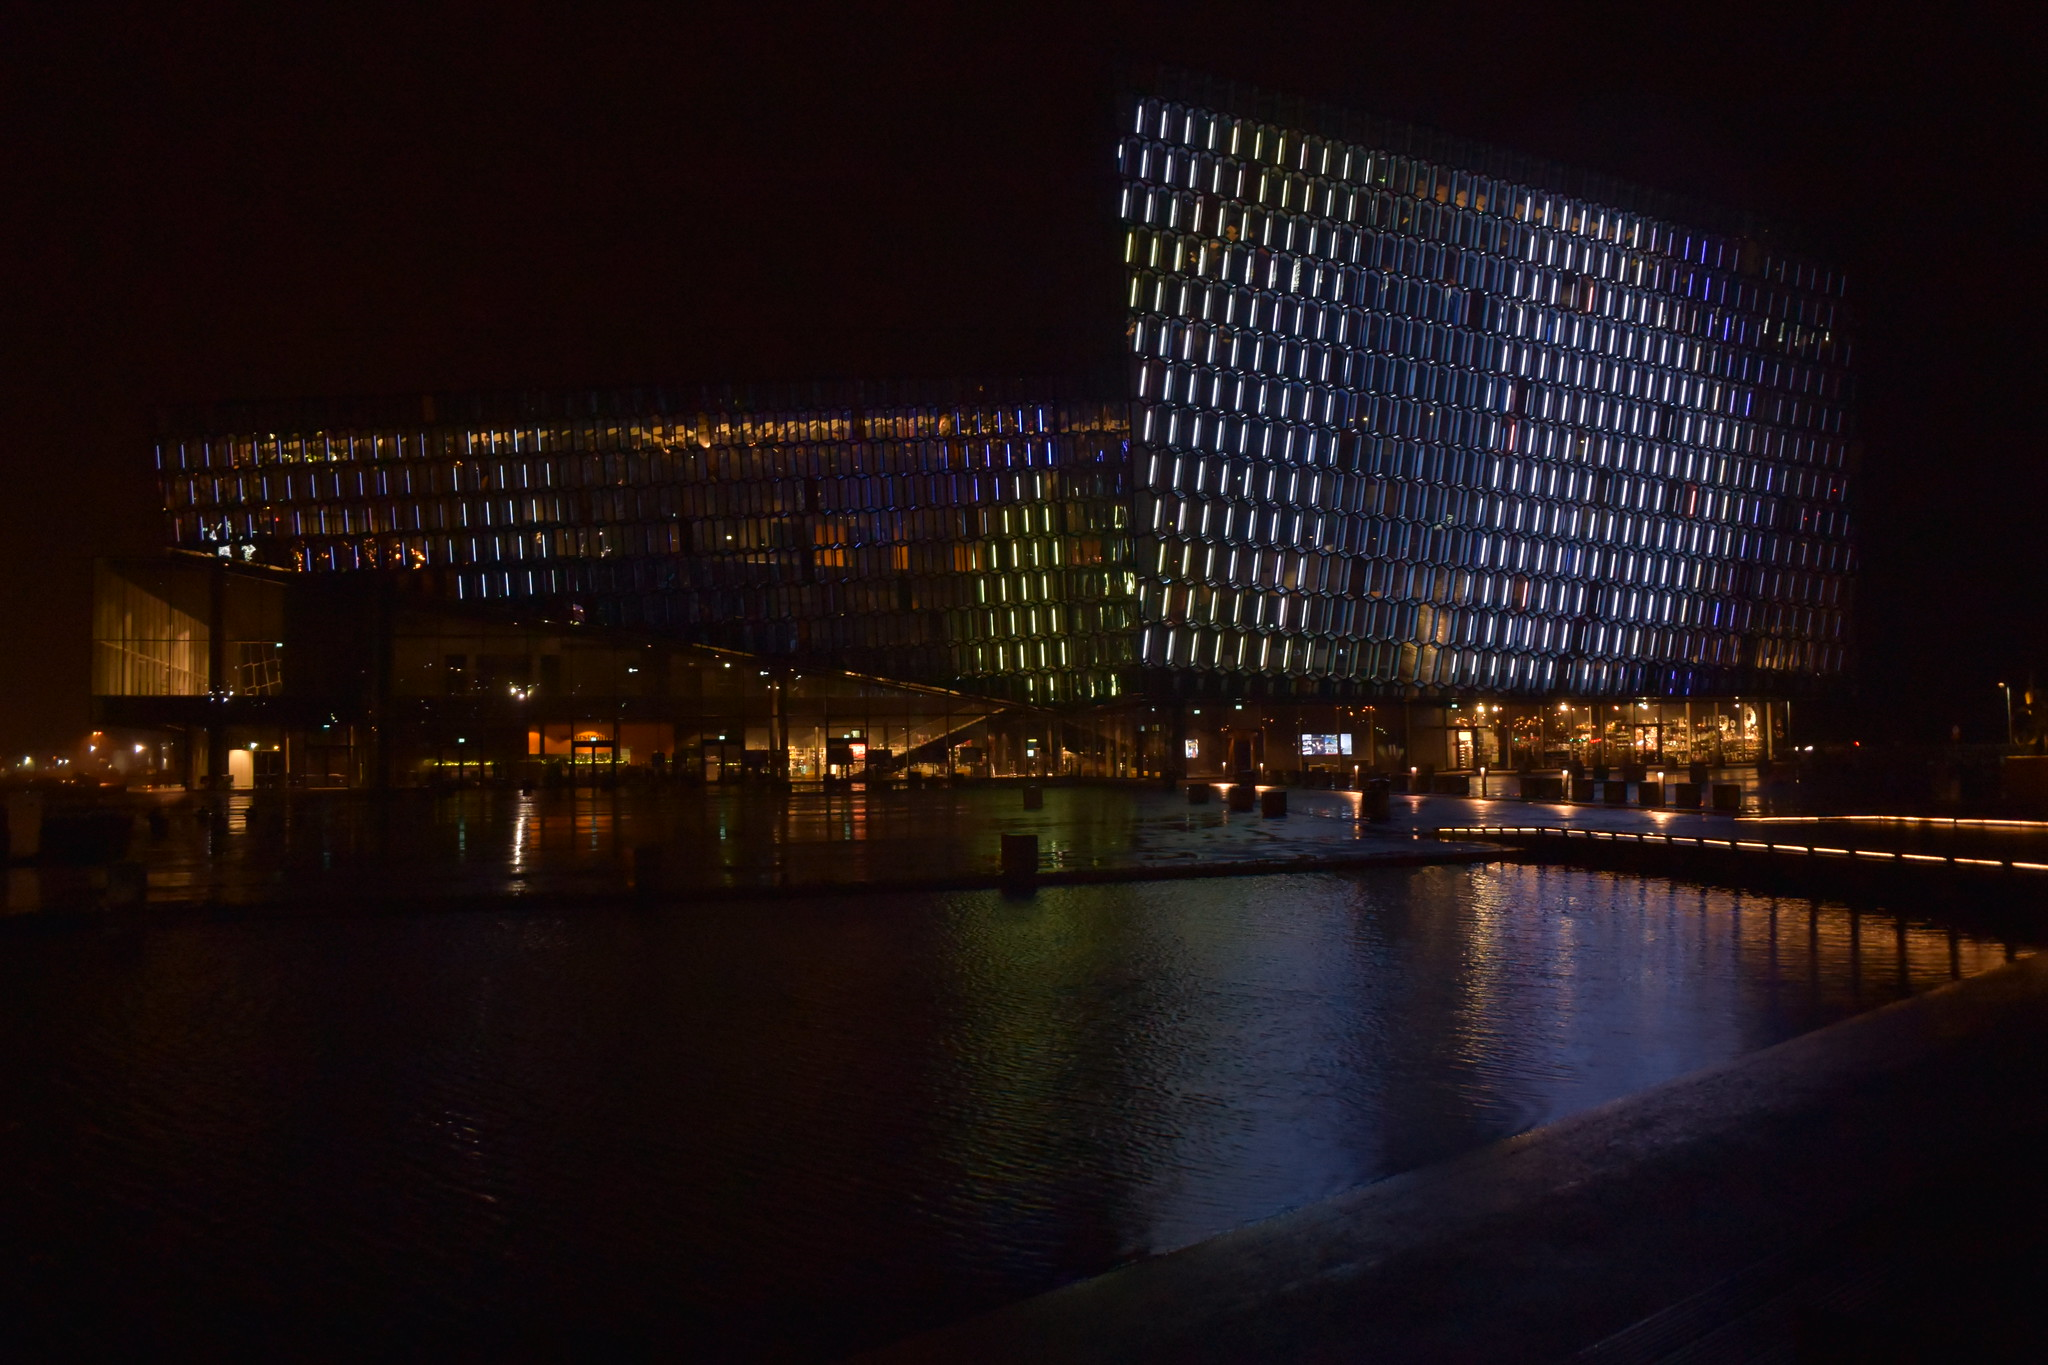 Harpa Concert Hall and Conference Centre, Iceland